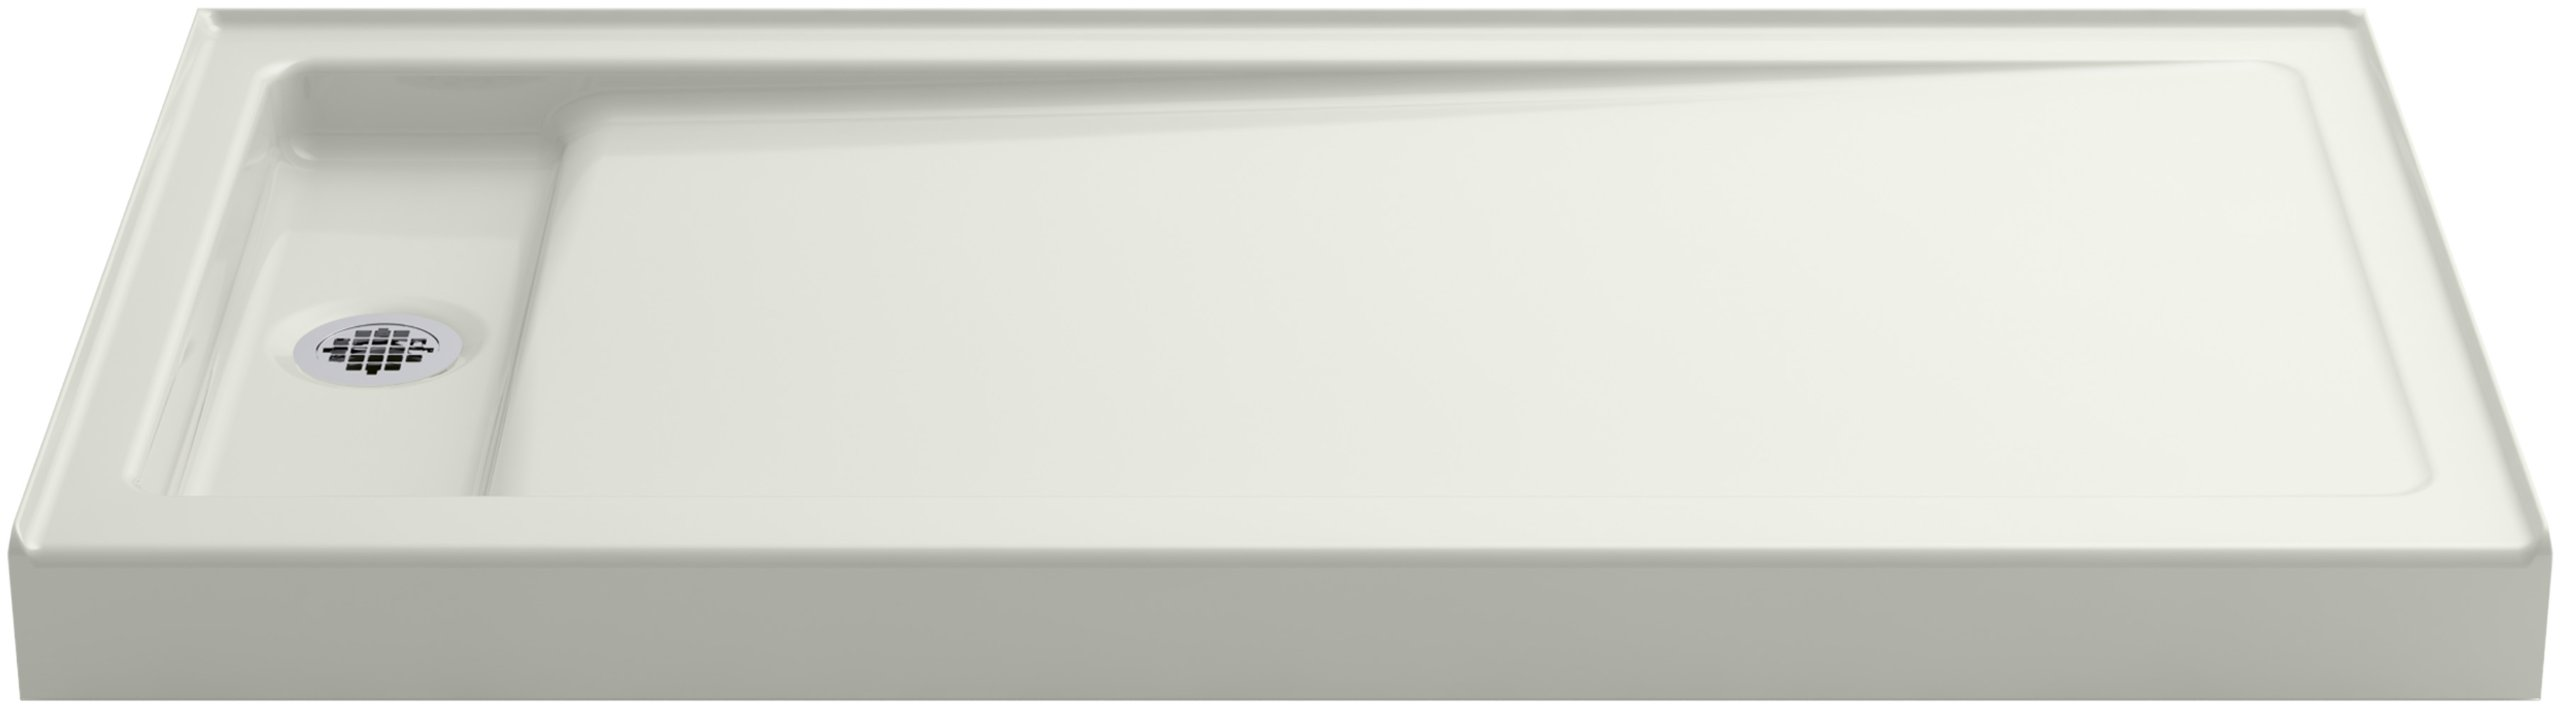 KOHLER K-9165-NY Bellwether 60-Inch x 32-Inch Single-Threshold Shower Base with Left Offset Drain, Dune by Kohler